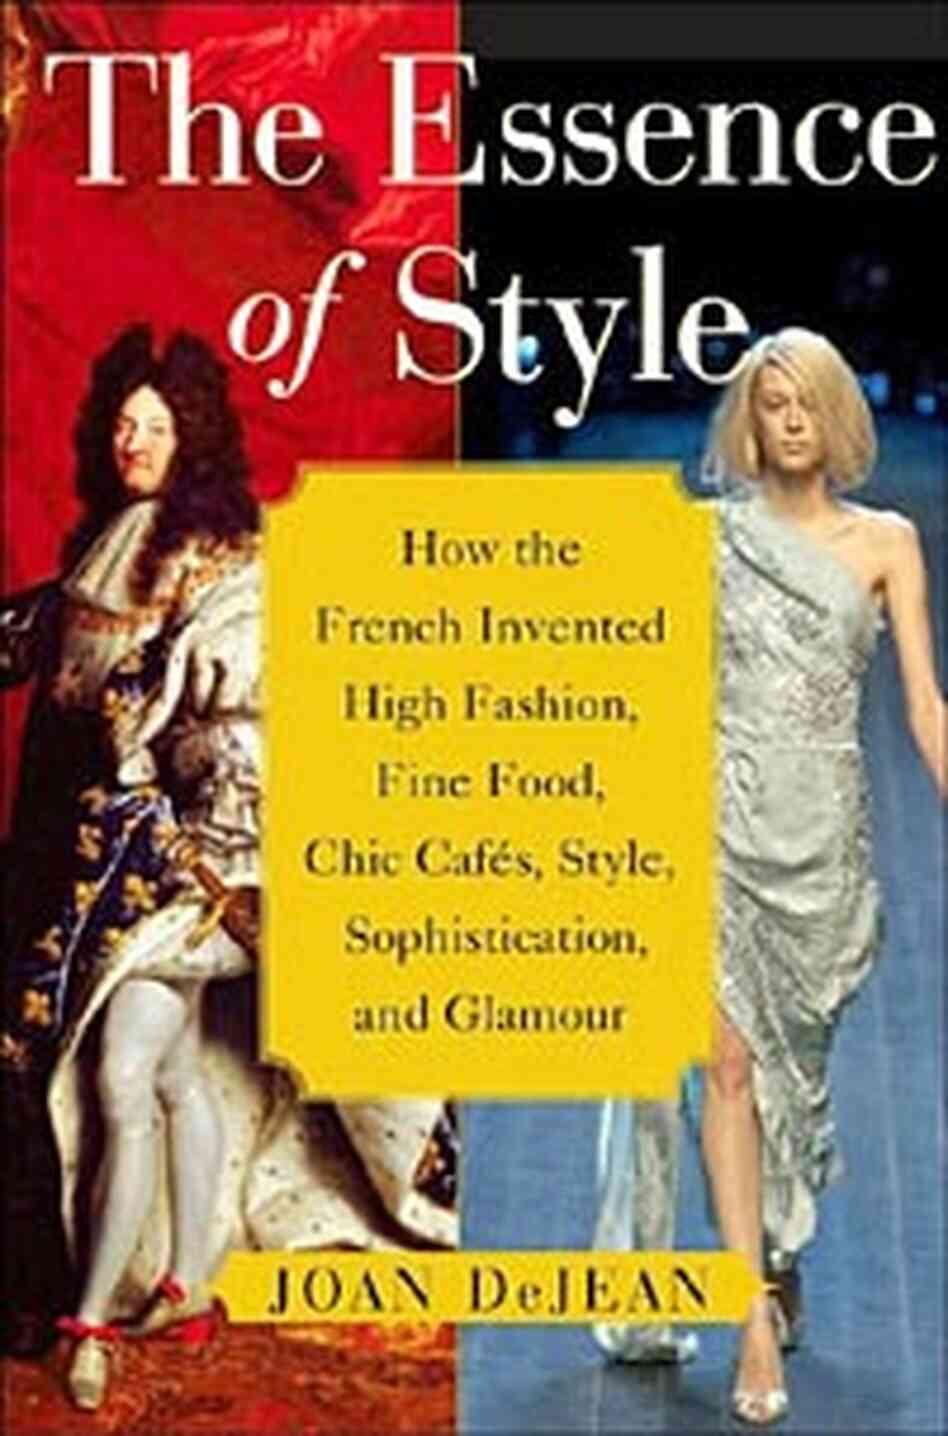 Cover for Joan DeJean's book 'The Essence of Style'